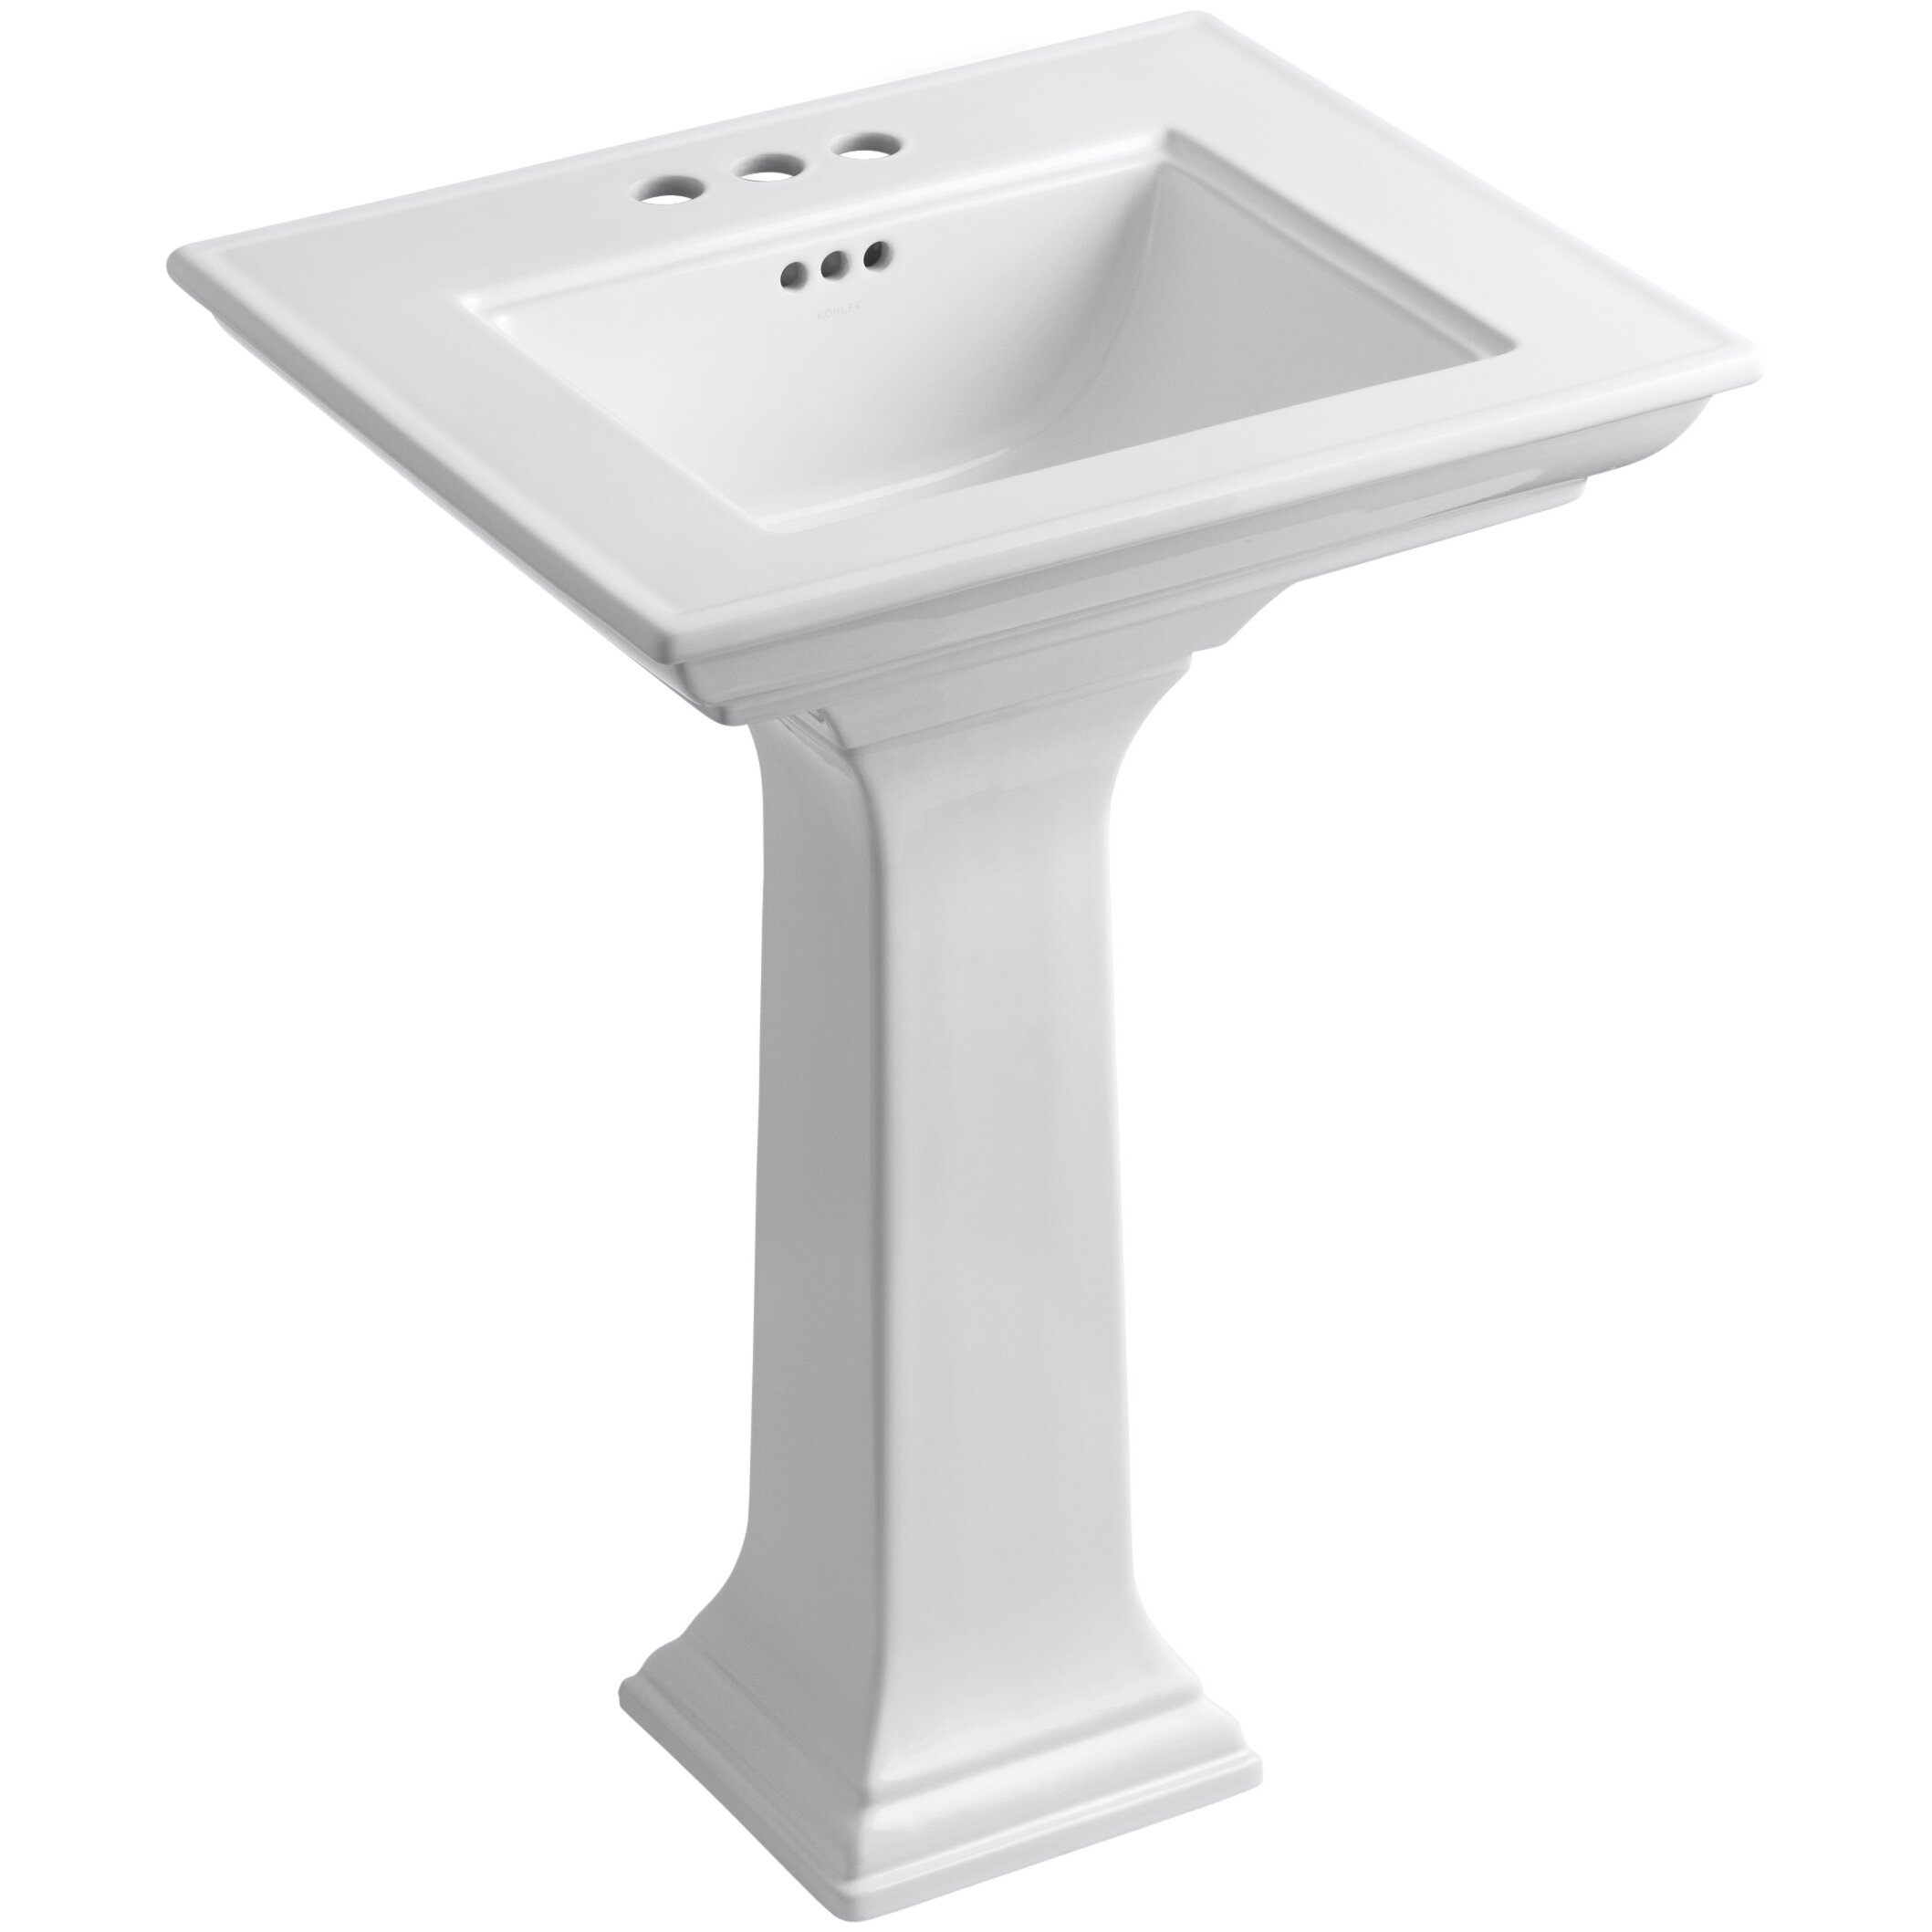 Kohler Memoirs Stately 24 Pedestal Bathroom Sink Reviews Wayfair